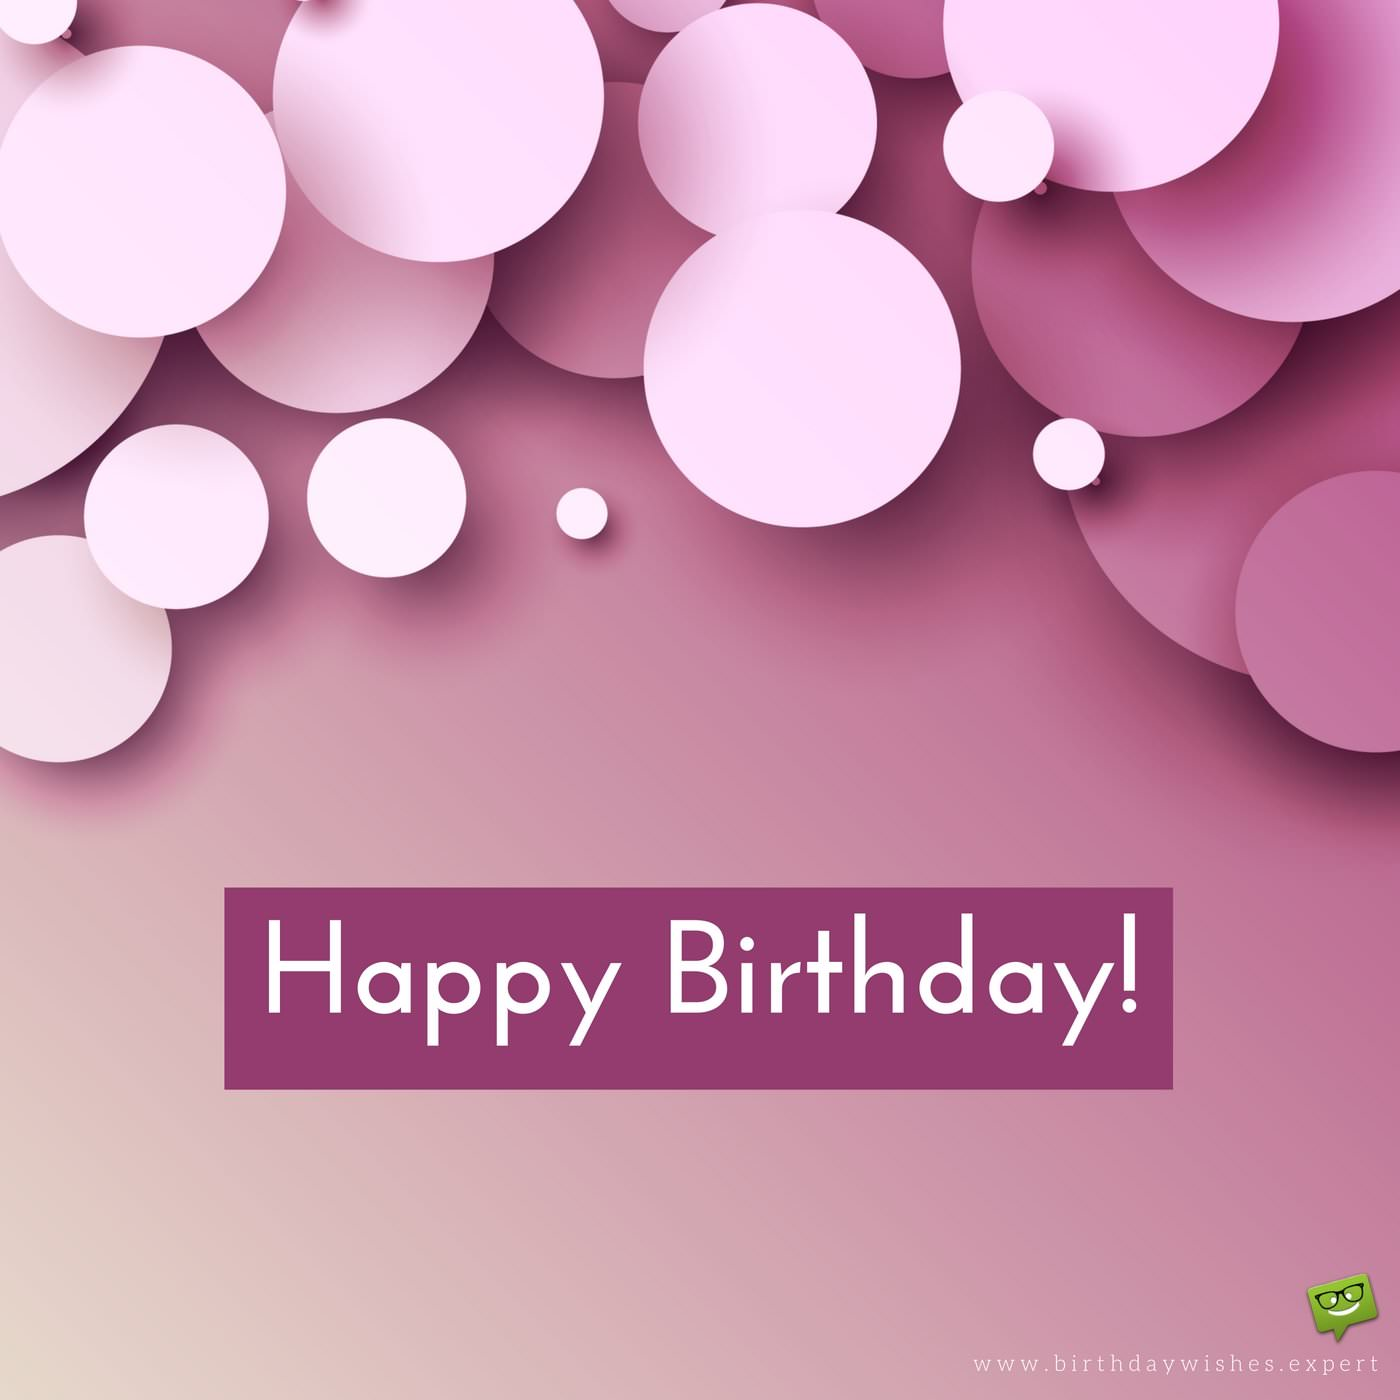 birthday wishes images pictures ; Birthday-wish-for-a-friend-on-modern-pink-background